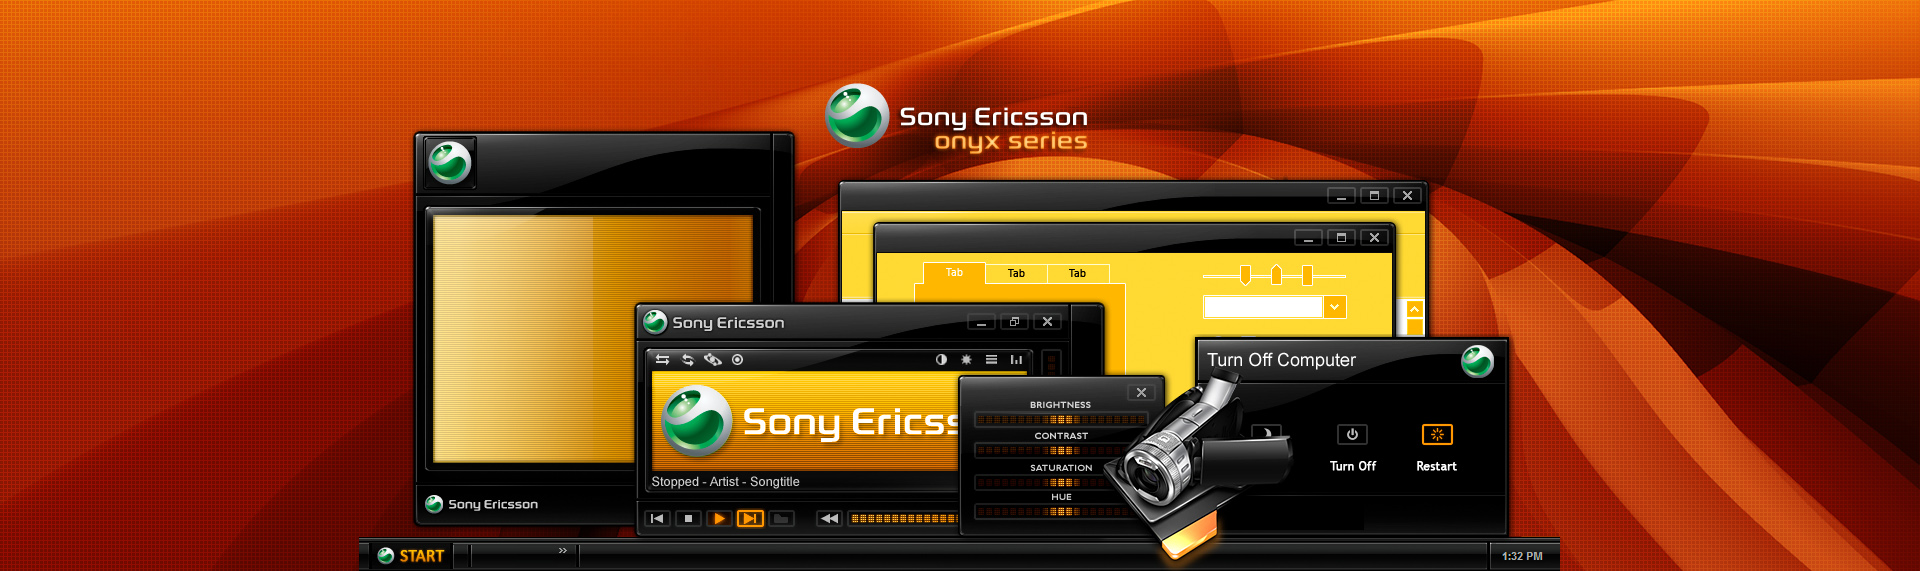 Sony Ericsson Onyx Series  Client: Sony Ericsson  Sony Ericsson and The Skins Factory present an exciting, color-filled exploration into Windows XP desktop customization. Featuring more than six chromatic-rich Hyperdesk hyperthemes, 61 stunning desktop icons, a super sleek Windows Media Player skin, Winamp skin and 6 gorgeous, chromatically-infused wallpapers. Copyright 2008. Sony Ericsson Mobile Communications AB. All Rights Reserved.